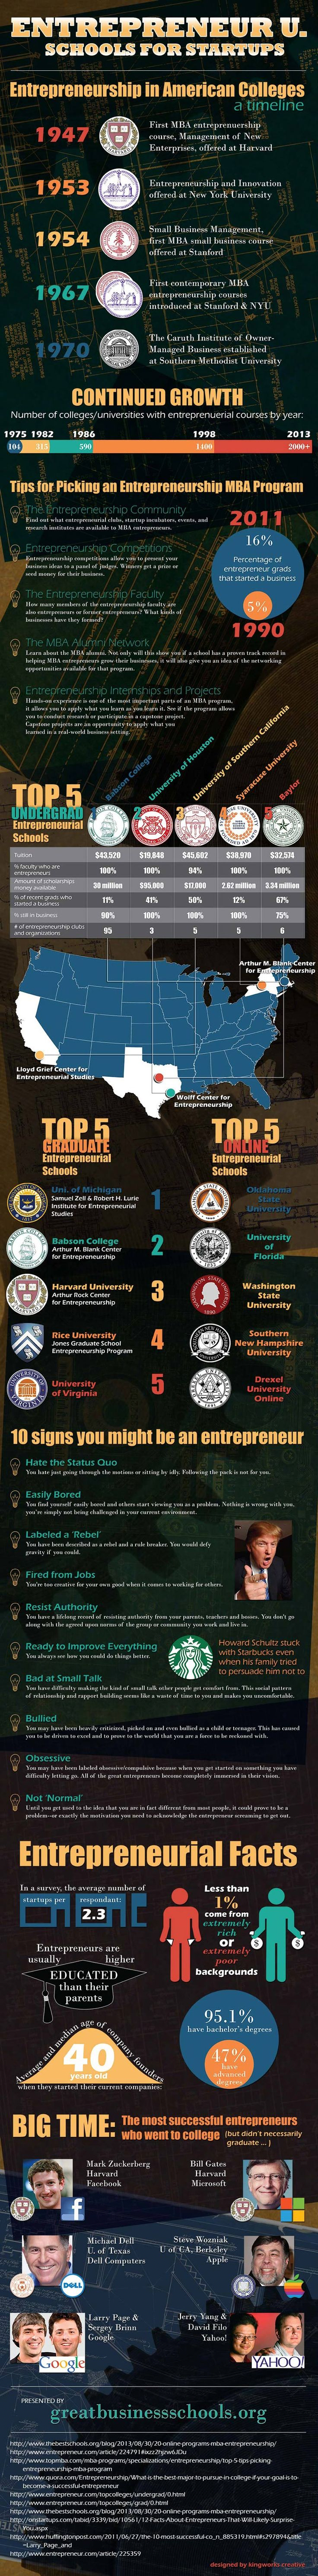 Entrepreneurial Education in the US : Entrepreneurial education in US has a history of more than 60 years with the first entrepreneurship course offered at Harvard in 1947. Have a look at the  top 5 entrepreneurial schools across the US and  find out 10 most met traits and skills of a successful entrepreneur.   > http://infographicsmania.com/entrepreneurial-education-in-the-us/?utm_source=Pinterest&utm_medium=ZAKKAS&utm_campaign=SNAP